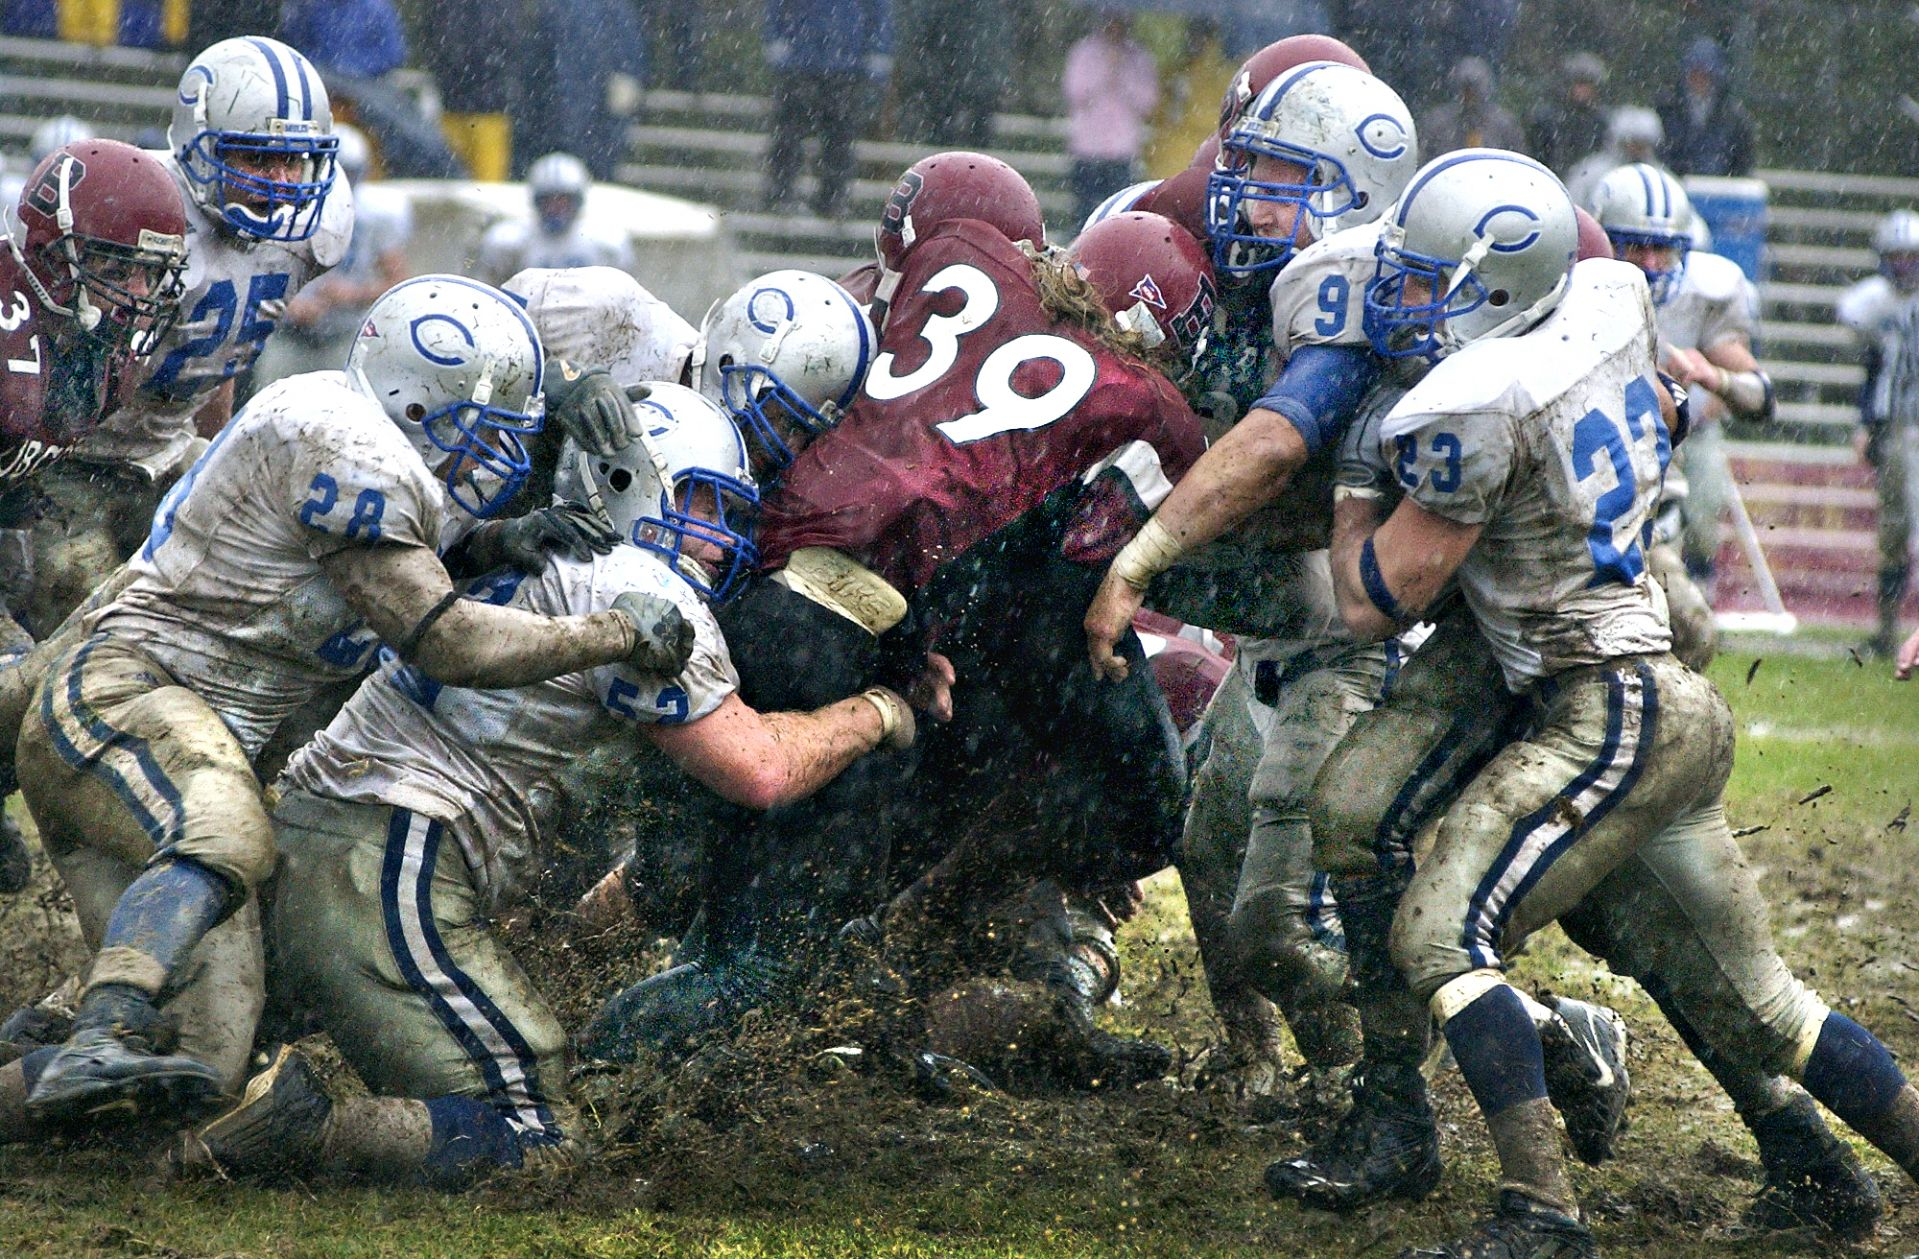 Later featured in Sports Illustrated, this iconic Bates photograph shows Jamie Walker '07 of Needham, Mass., moving a pile of Colby Mule defenders during a game at Garcelon Field on Oct. 28, 2006. (Daryn Slover for Bates College)